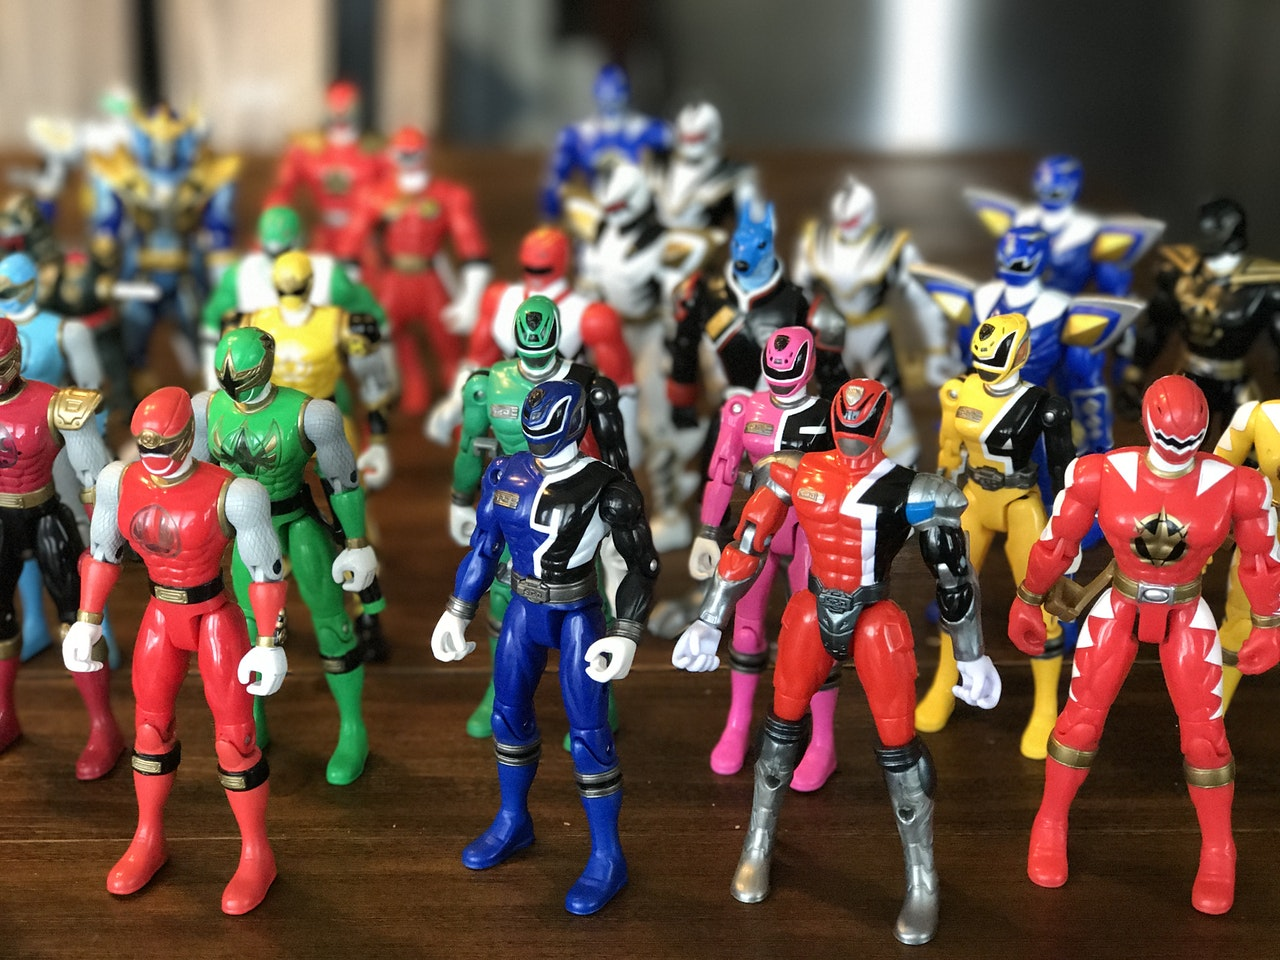 Jouets Power Rangers (photo par David McBee de Pexels)